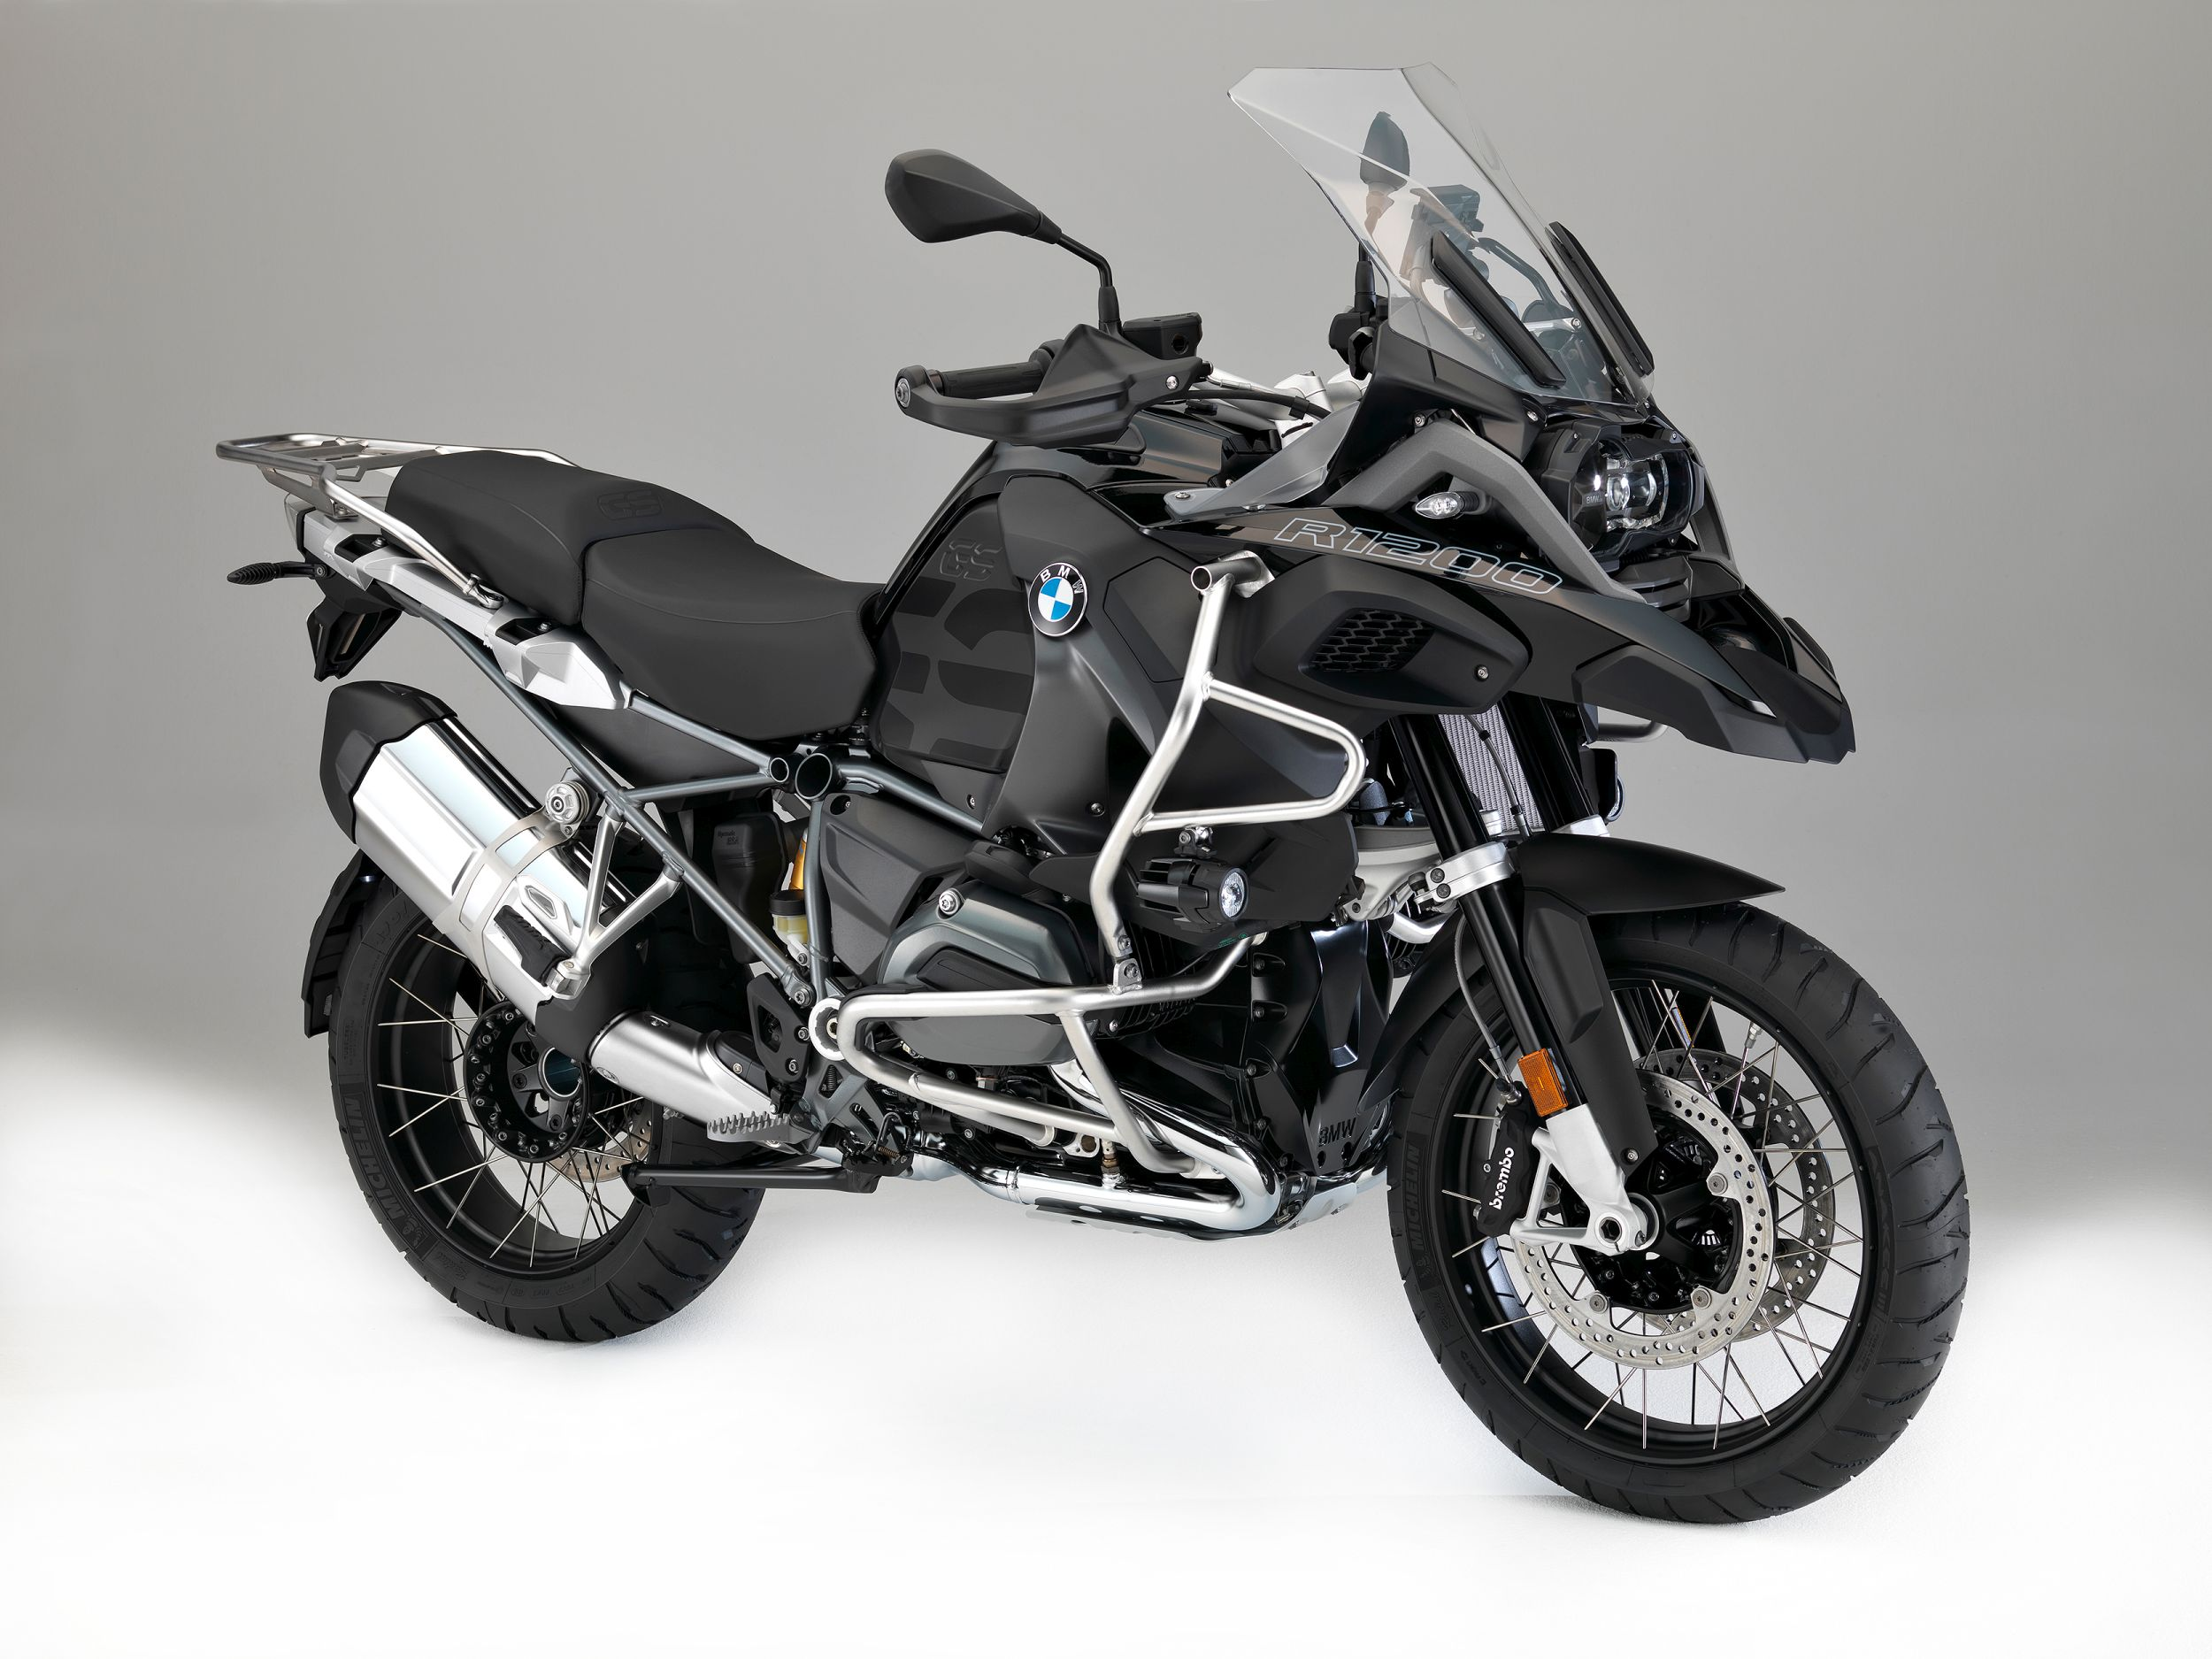 001 Exciting Bmw R 1200 Cl forum Cars Trend